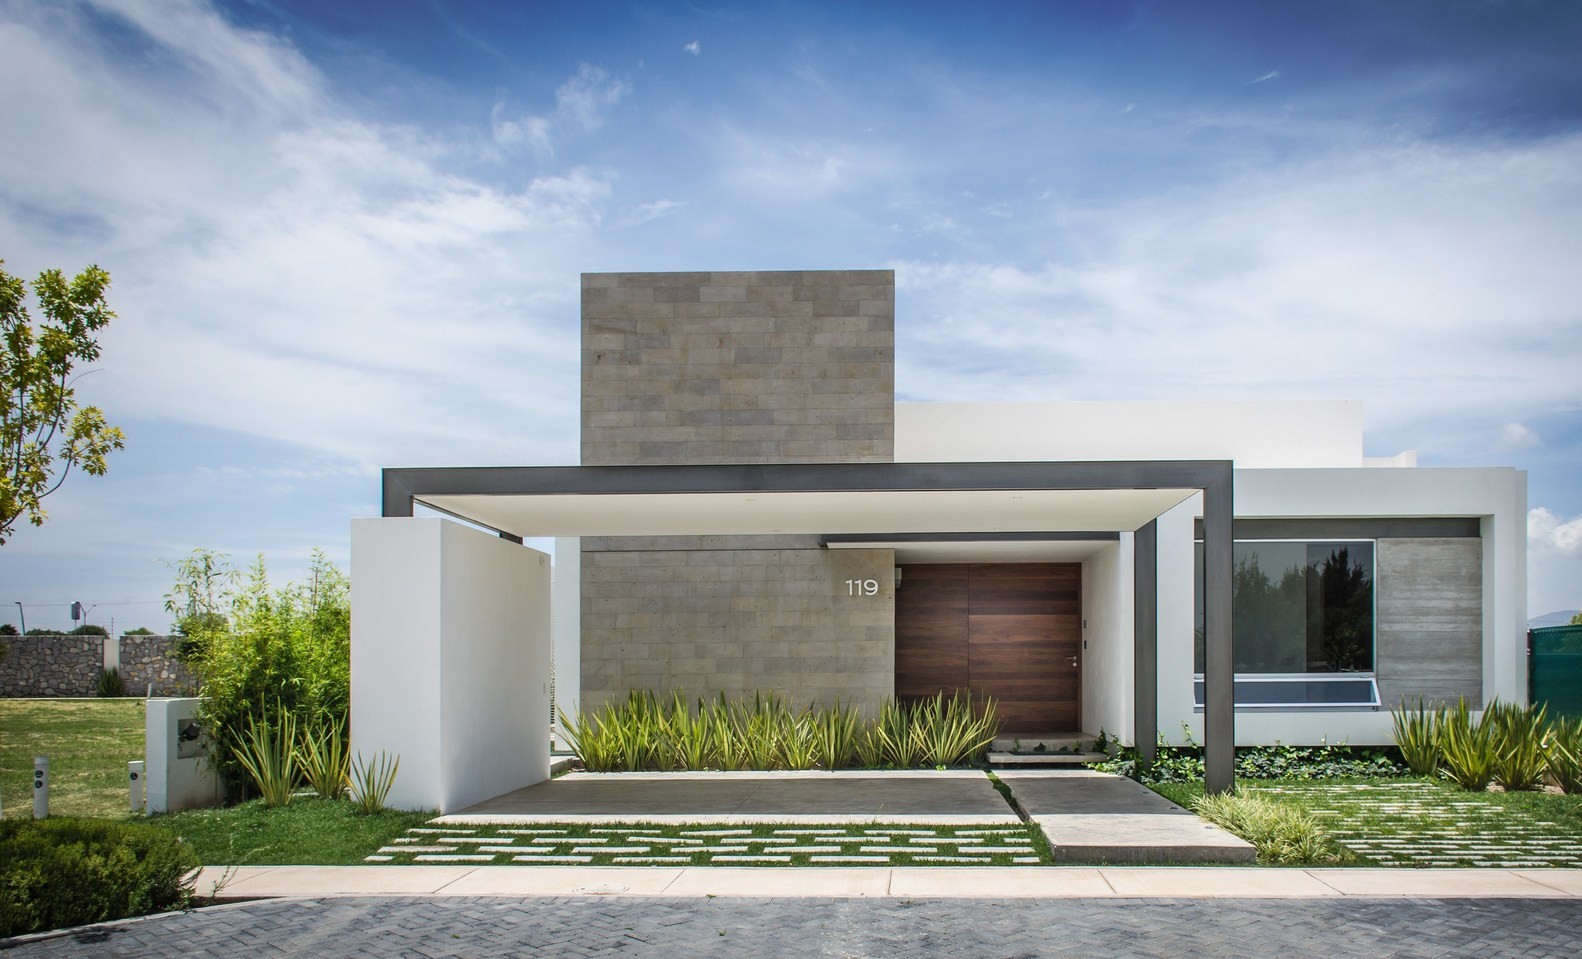 Arquitectura Y Diseño De Interiores Increíble House T02 by Adi Architecture and Interior Design In Mexico Of Arquitectura Y Diseño De Interiores Brillante Render Y Arquitectura 3d